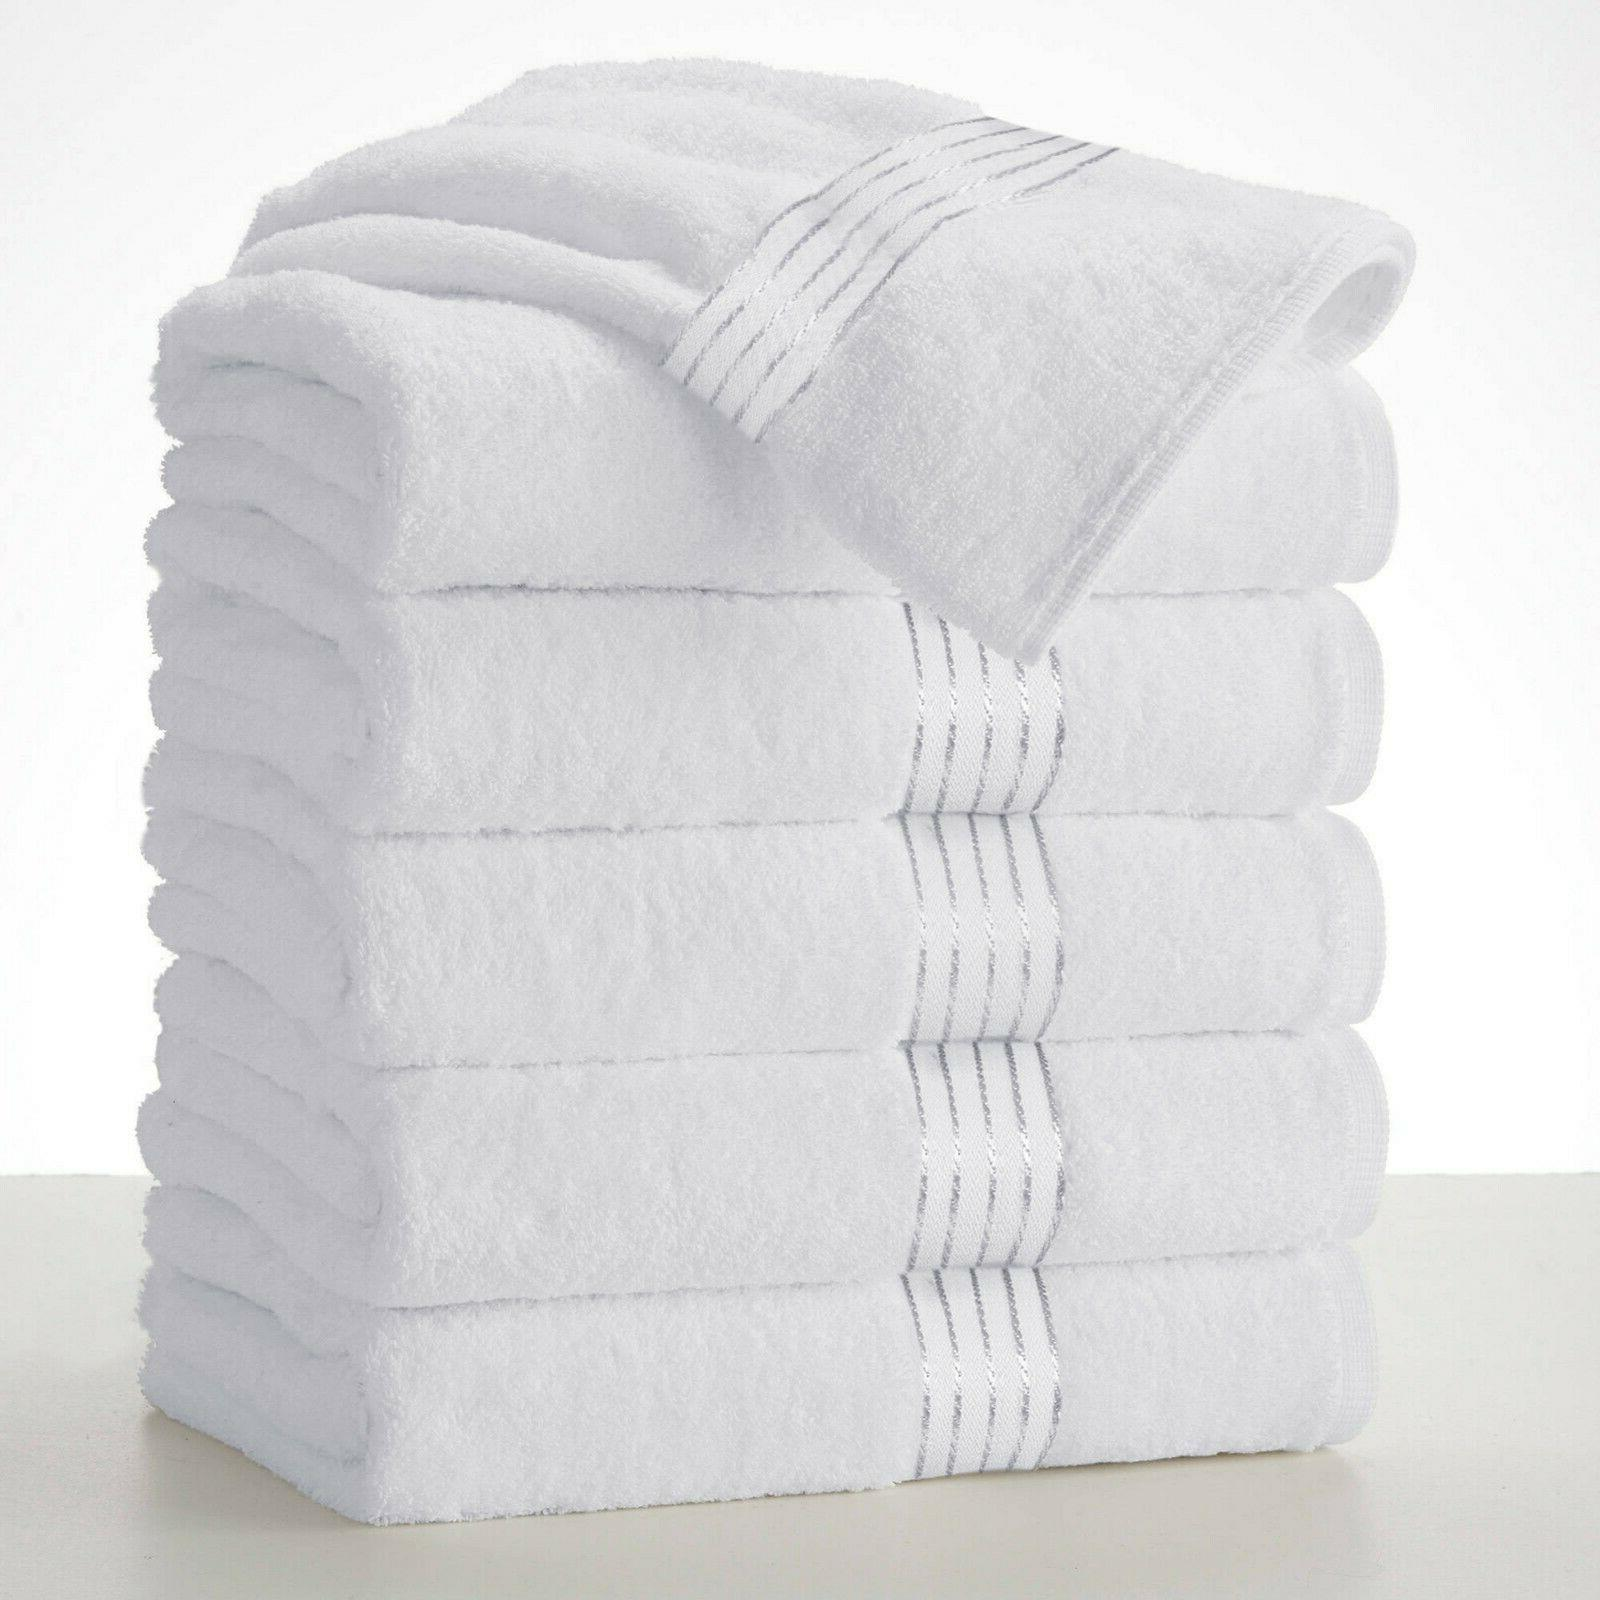 """Large Packs Sets Sheets 100% Cotton 27""""x58"""" Absorbent"""